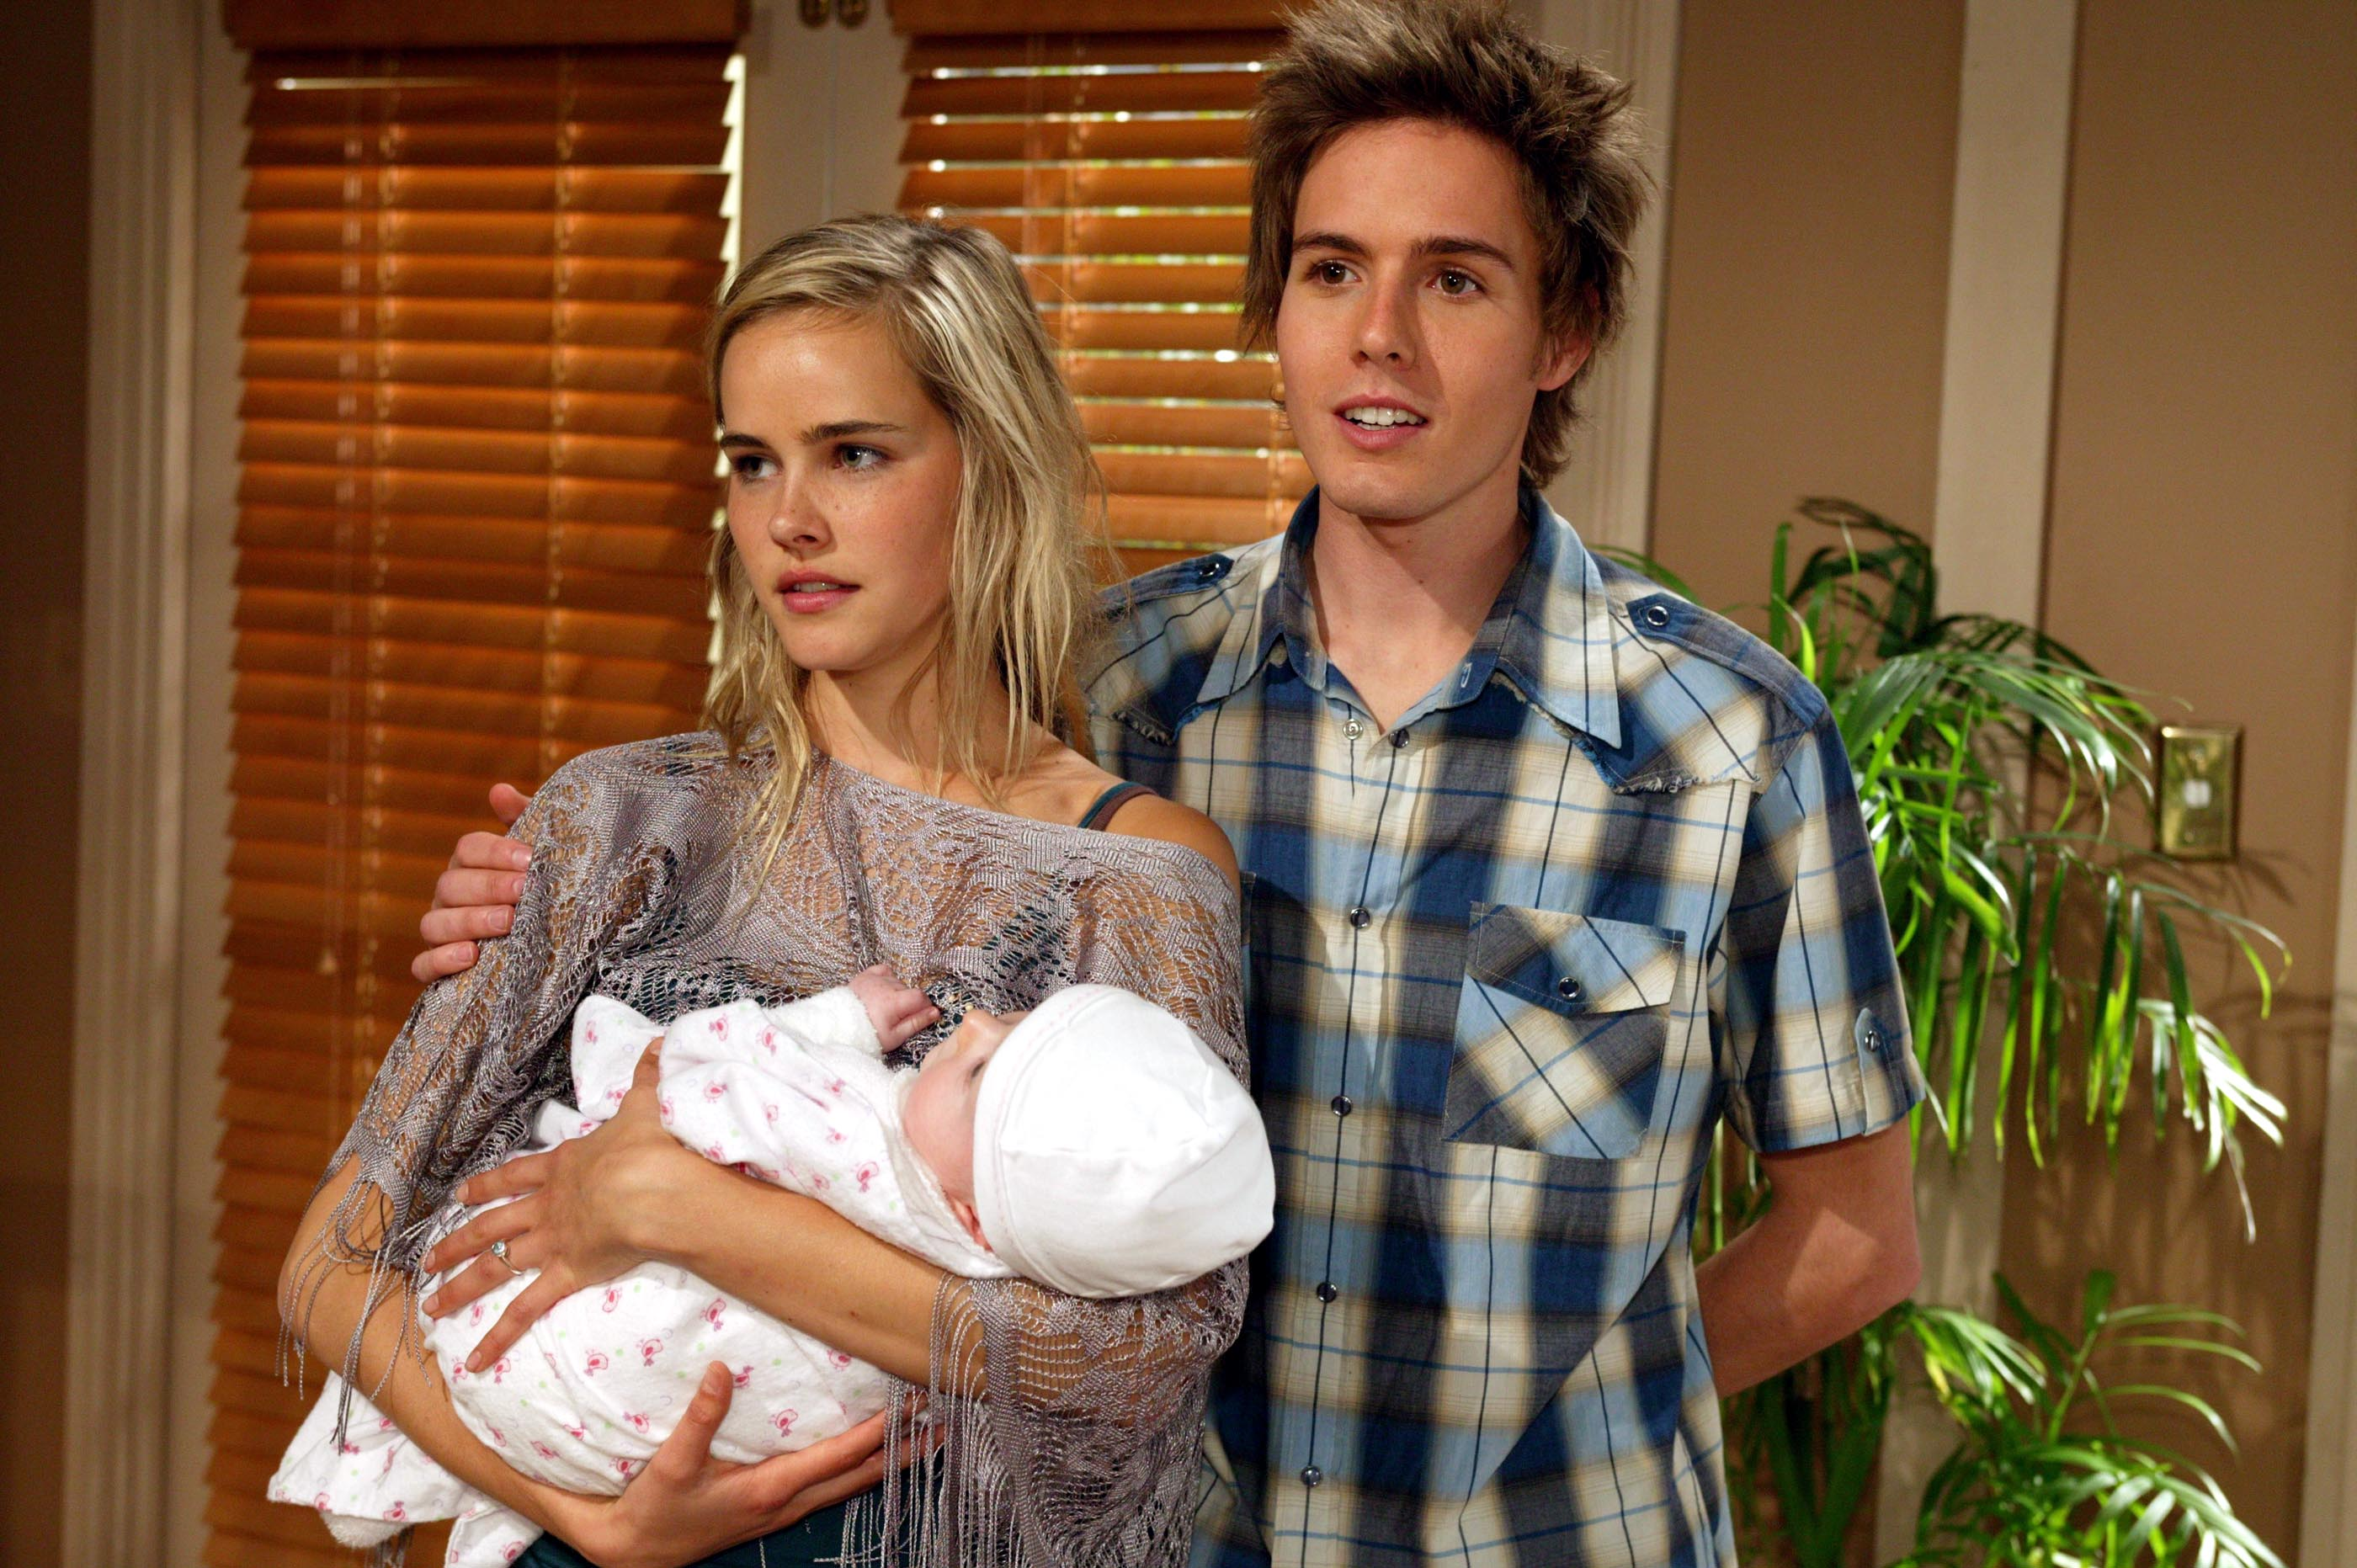 17 Old Home And Away Characters That Will Make You Sick